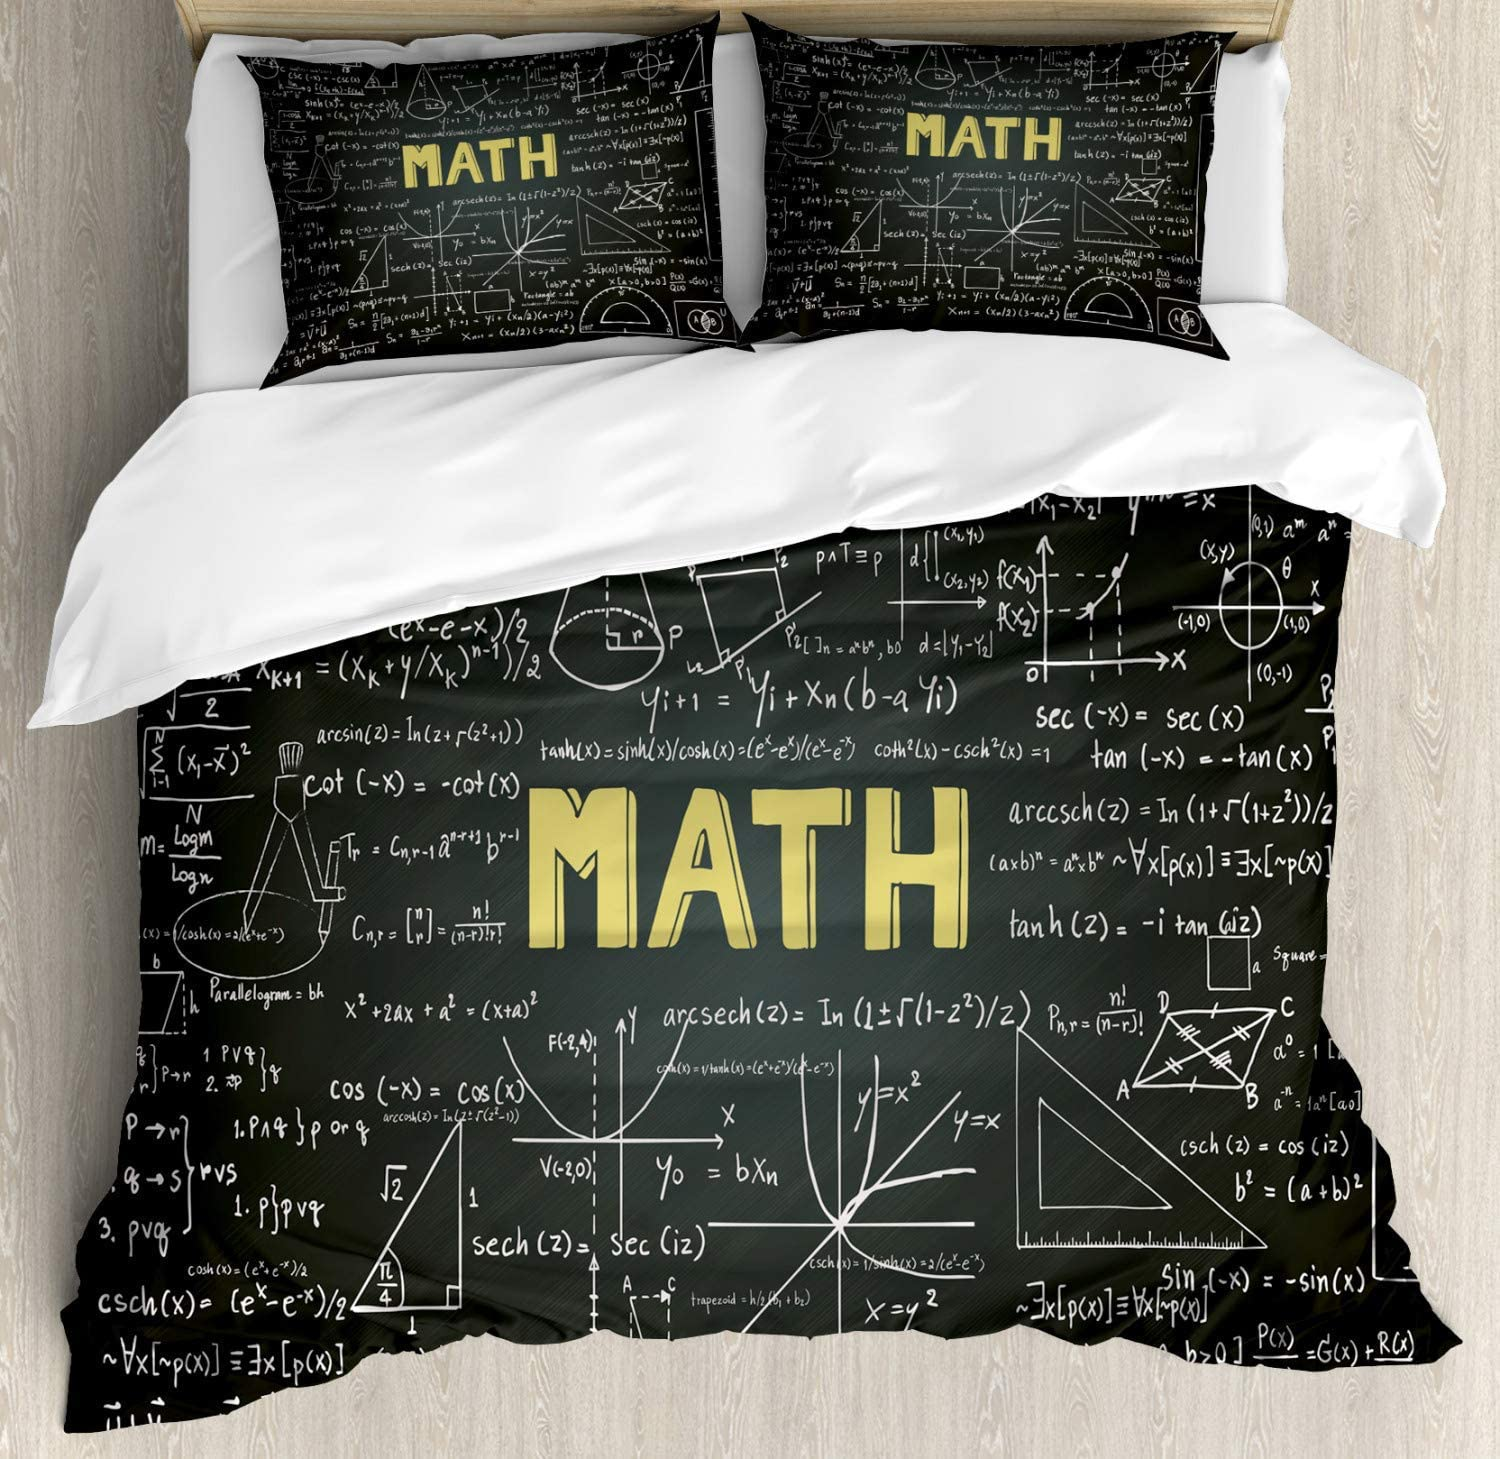 Lplpol Mathematics Classroom Decor Duvet Cover Set, Dark Blackboard Word Math Equations Geometry Axis Bedding Set Comforter Cover 3-Piece Quilt Set with Zipper Closure, Dark Brown White Yellow